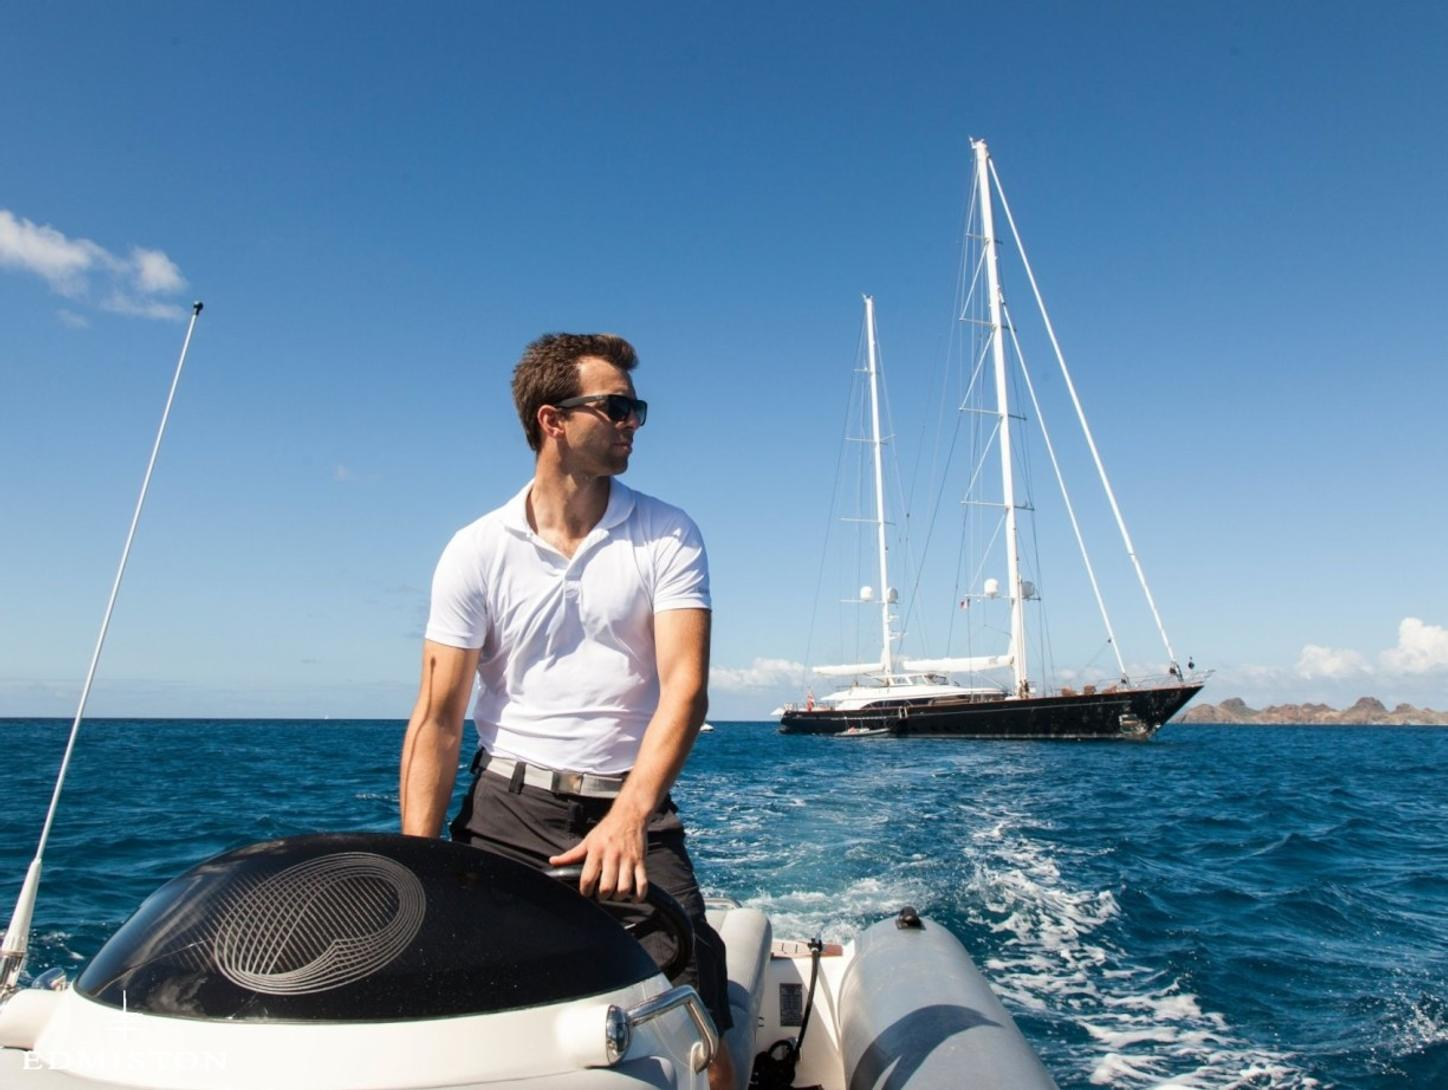 crew member drives a tender as sailing yacht PANTHALASSA anchors in the background while on a Caribbean yacht charter